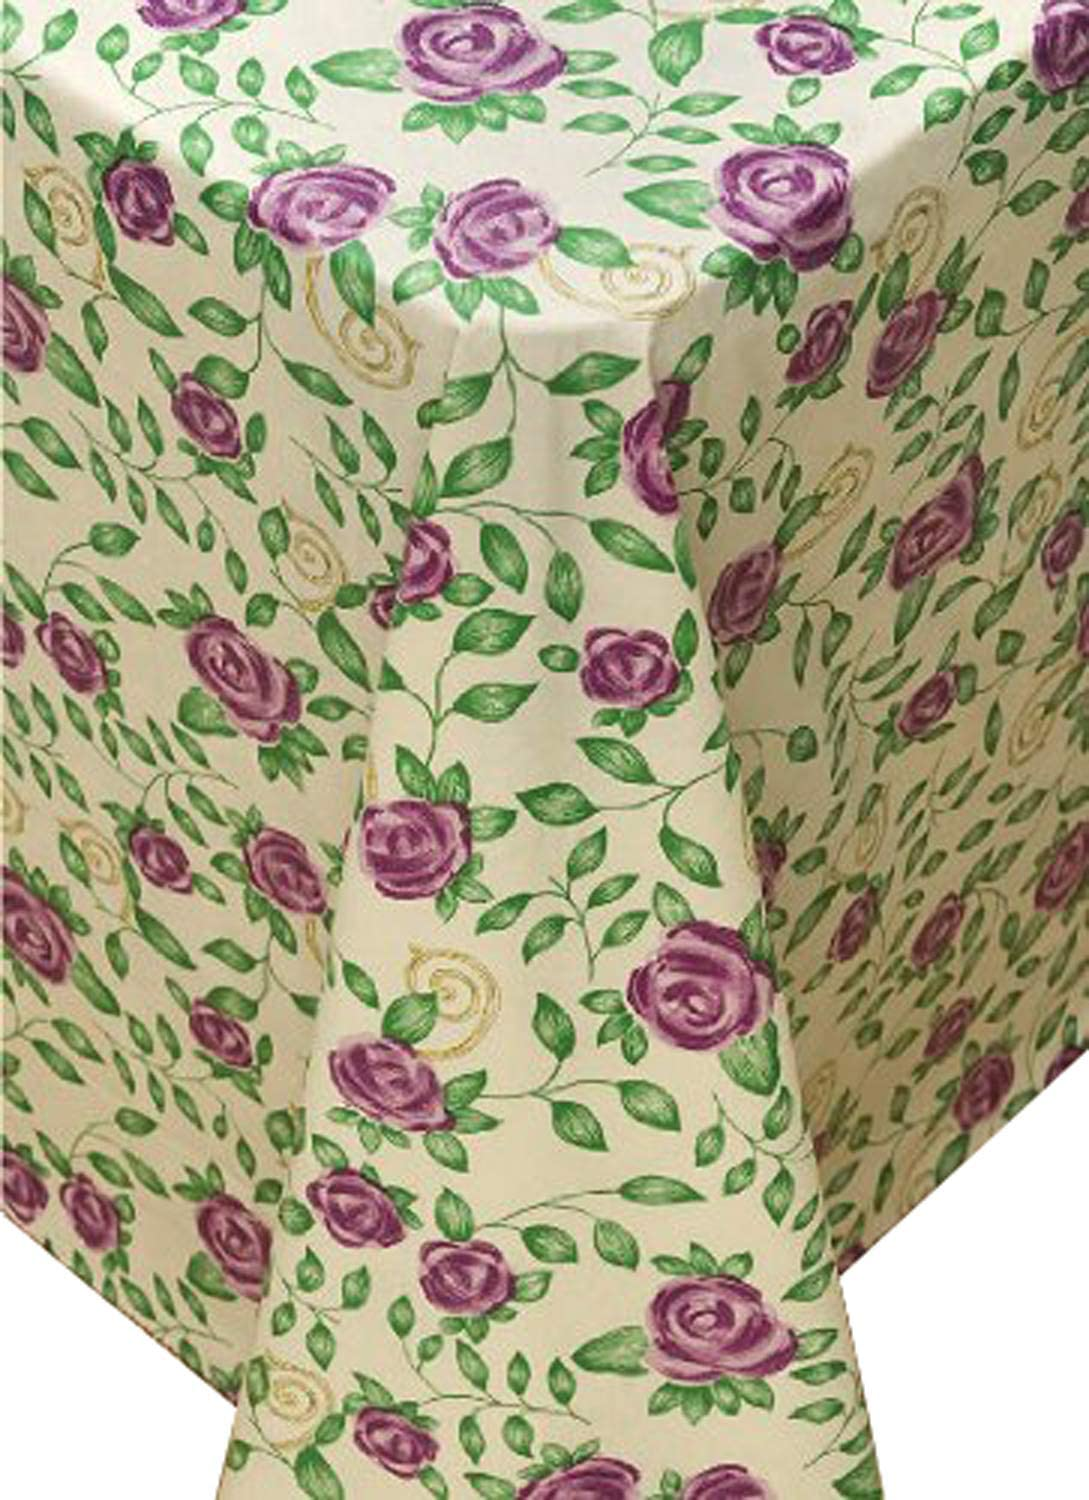 Broder Manufacturing Inc Rose Time Flannel Backed Vinyl Tablecloth, 52x52 Square